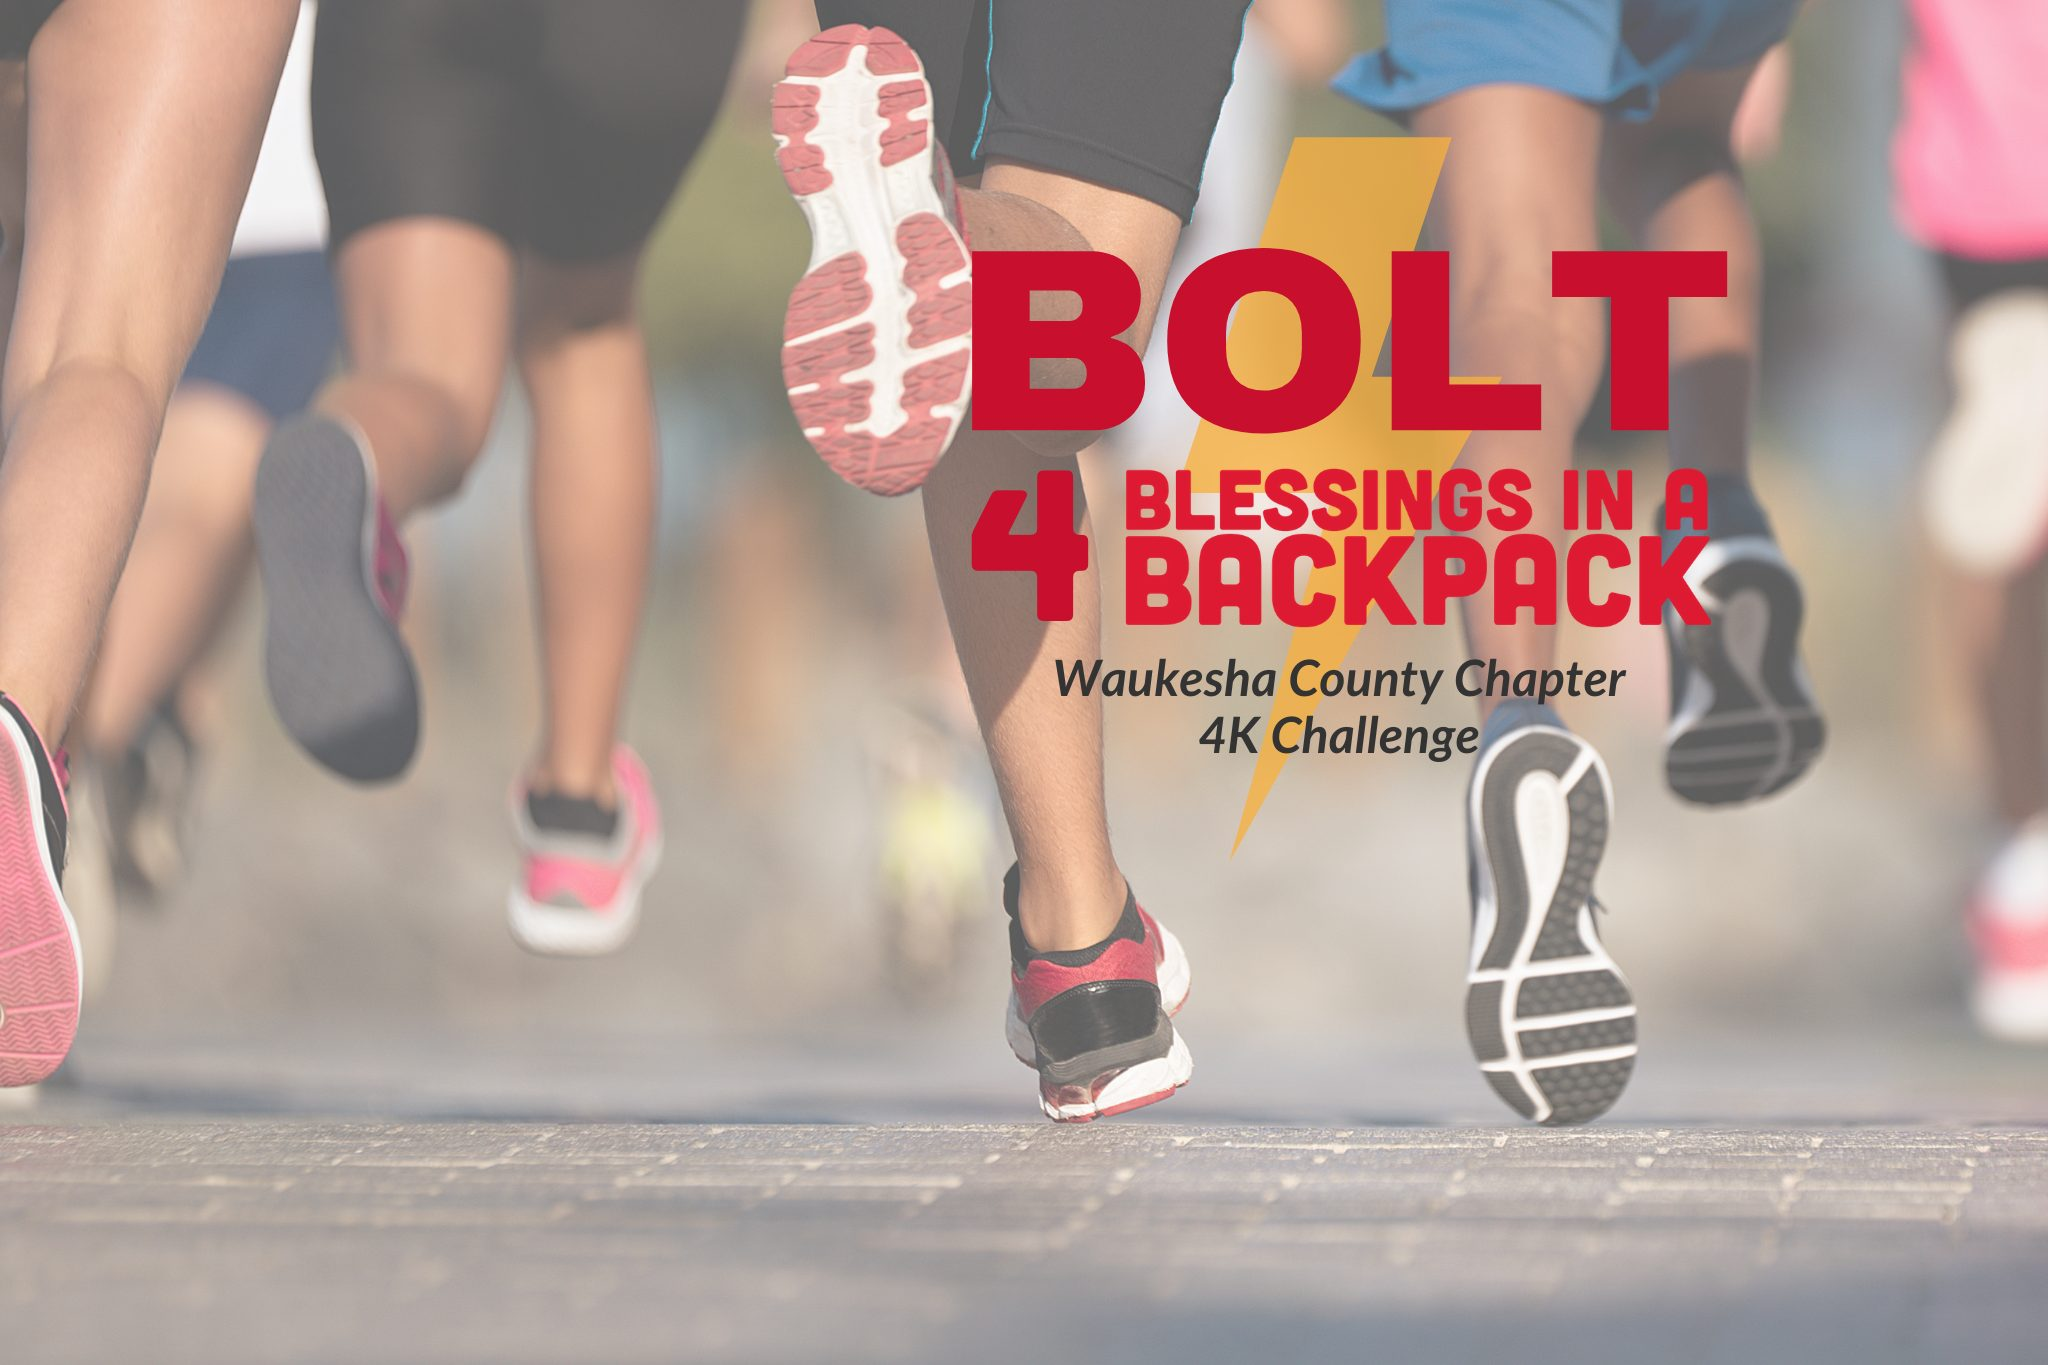 Bolt for Blessings in a Backpack